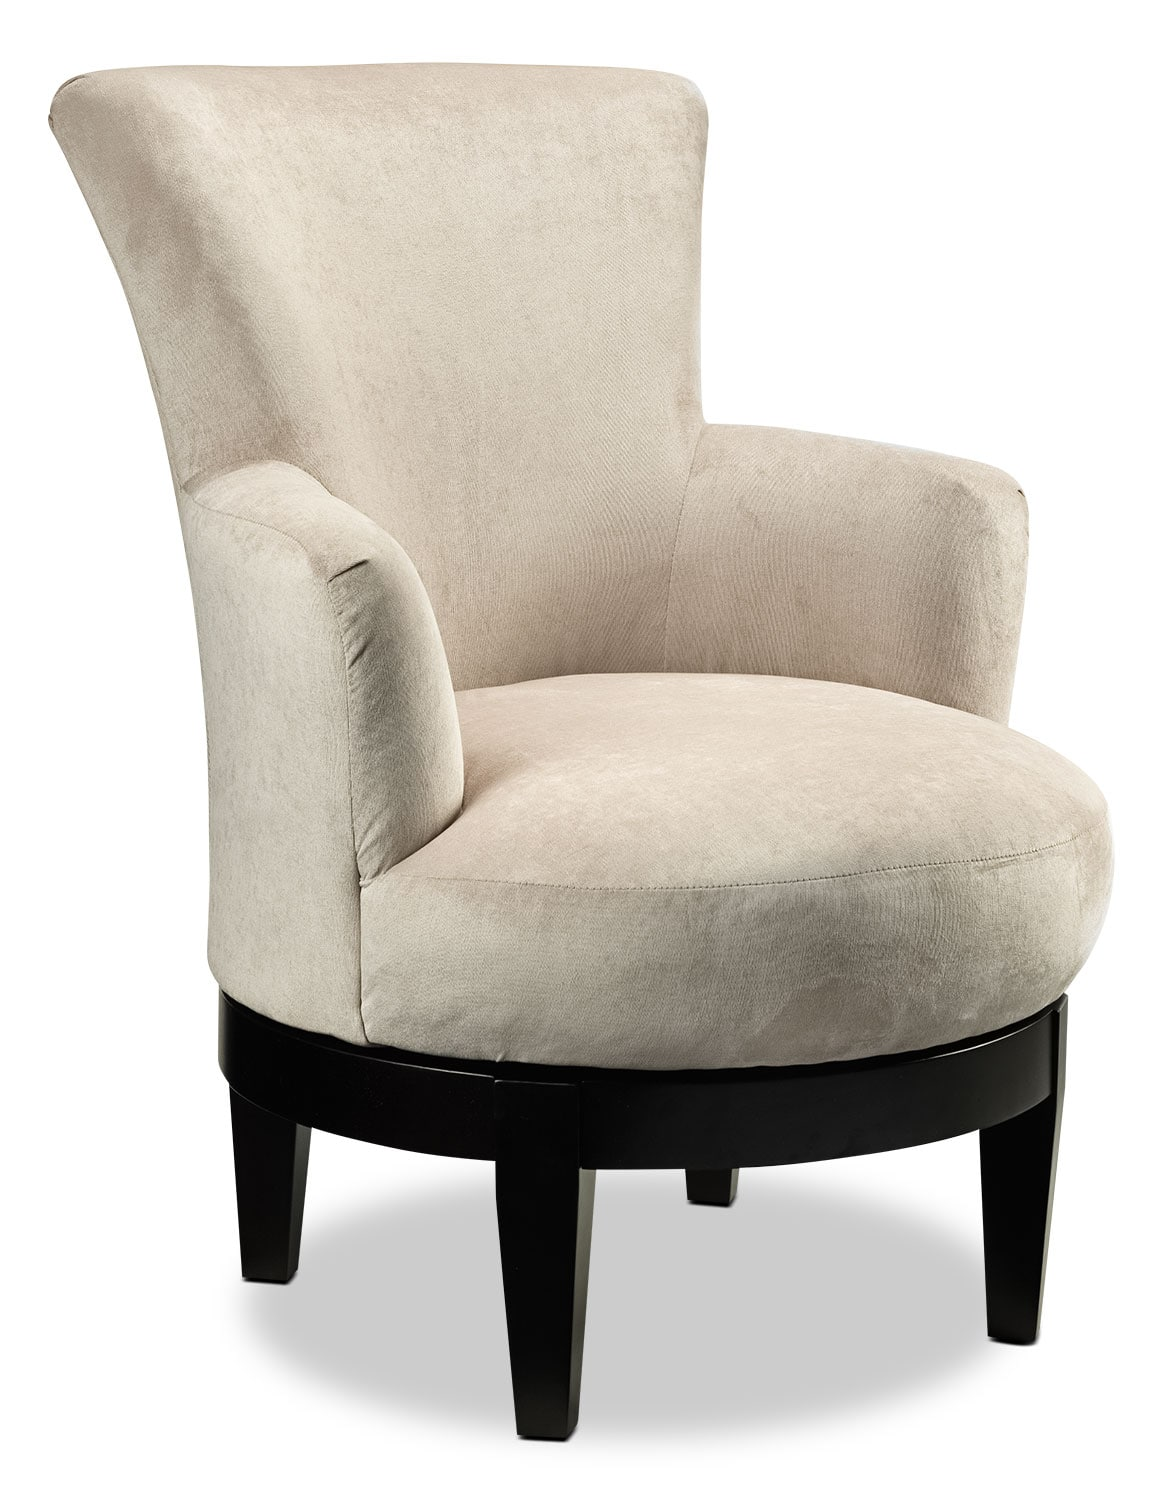 Living Room Furniture - Justine Accent Chair - Beige